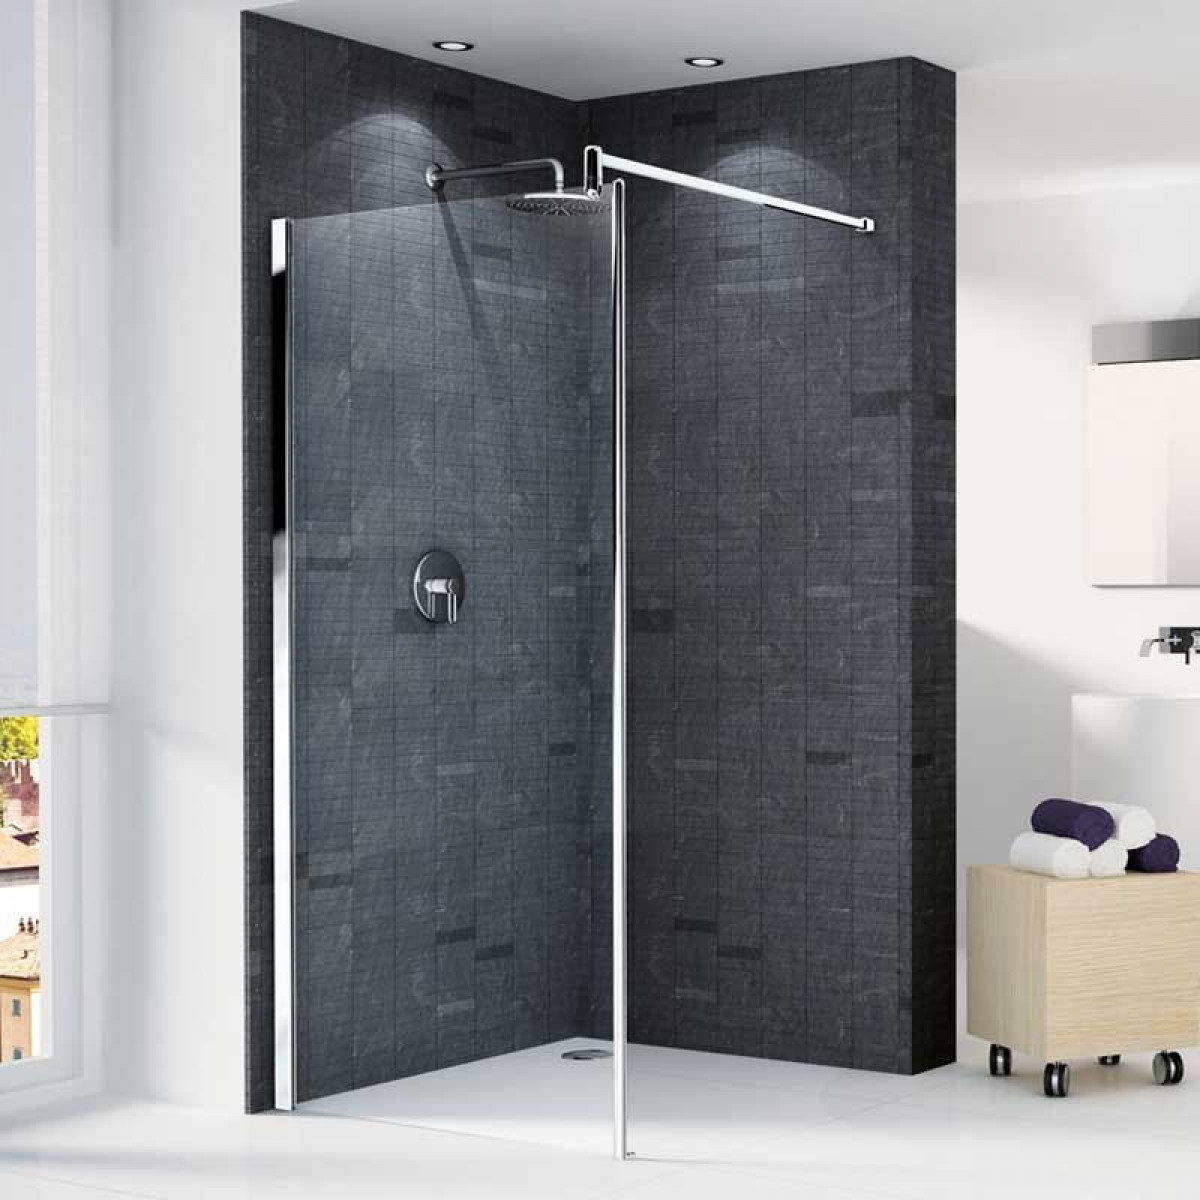 Novellini Go 1 Walk in 780mm Shower Panel | GON178-1K